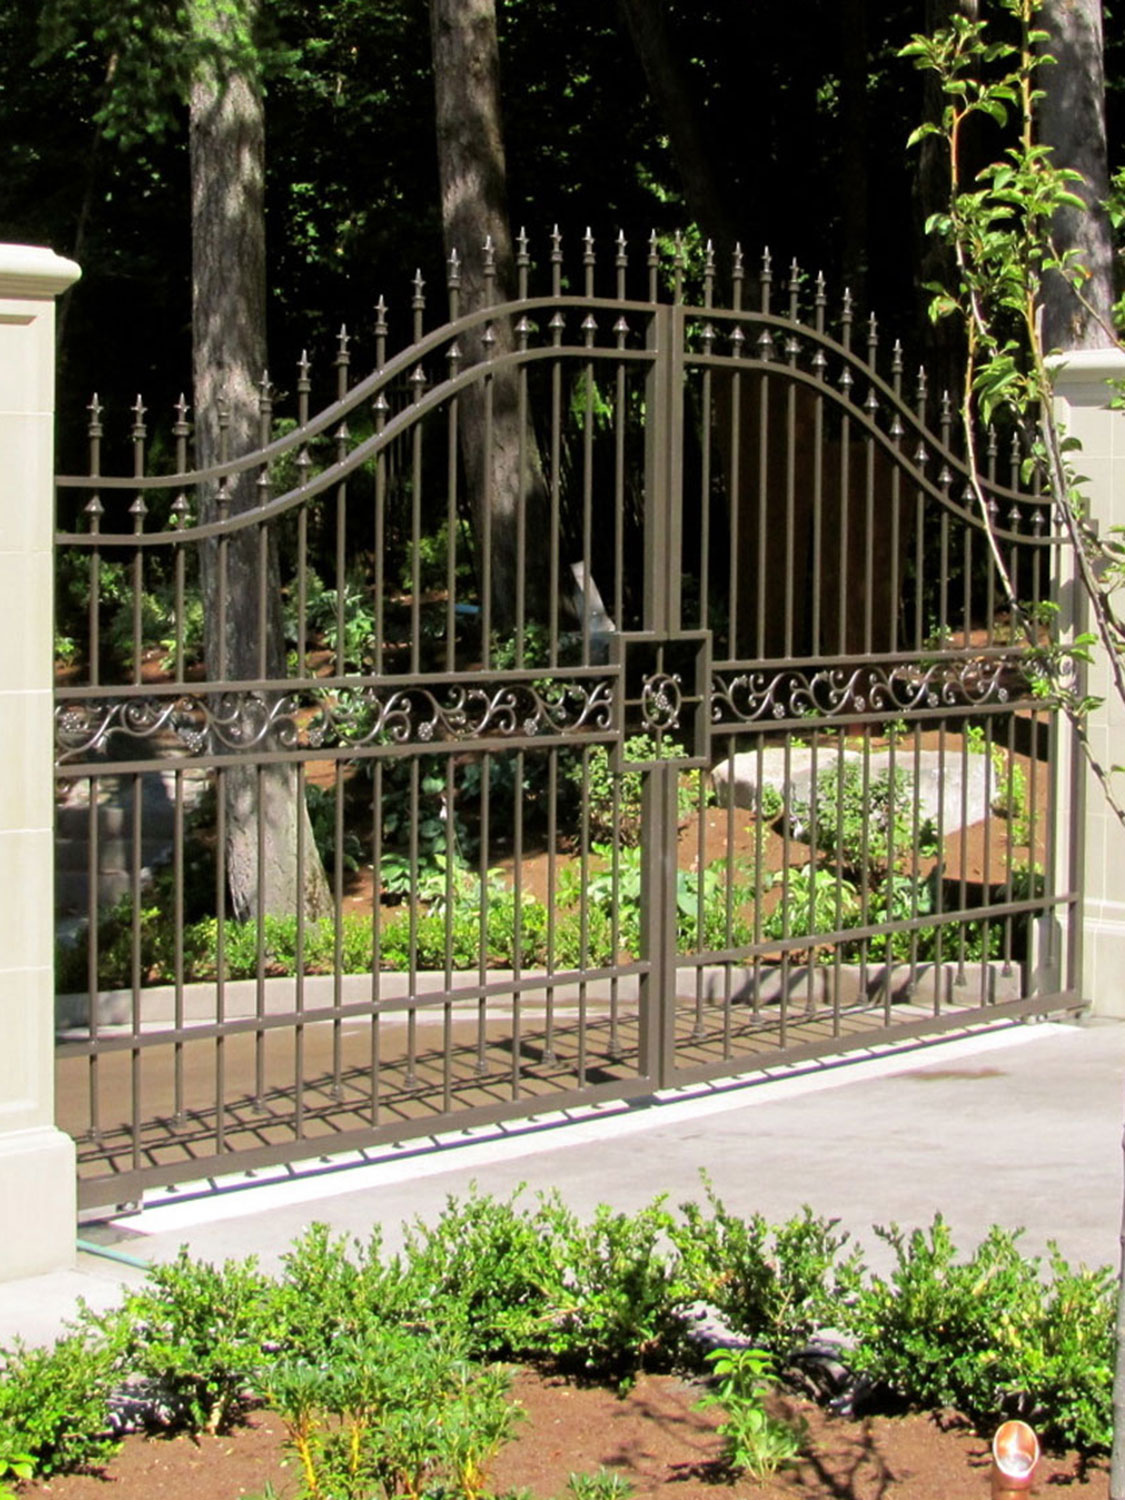 Automatic Gate and Fence - Featured Image